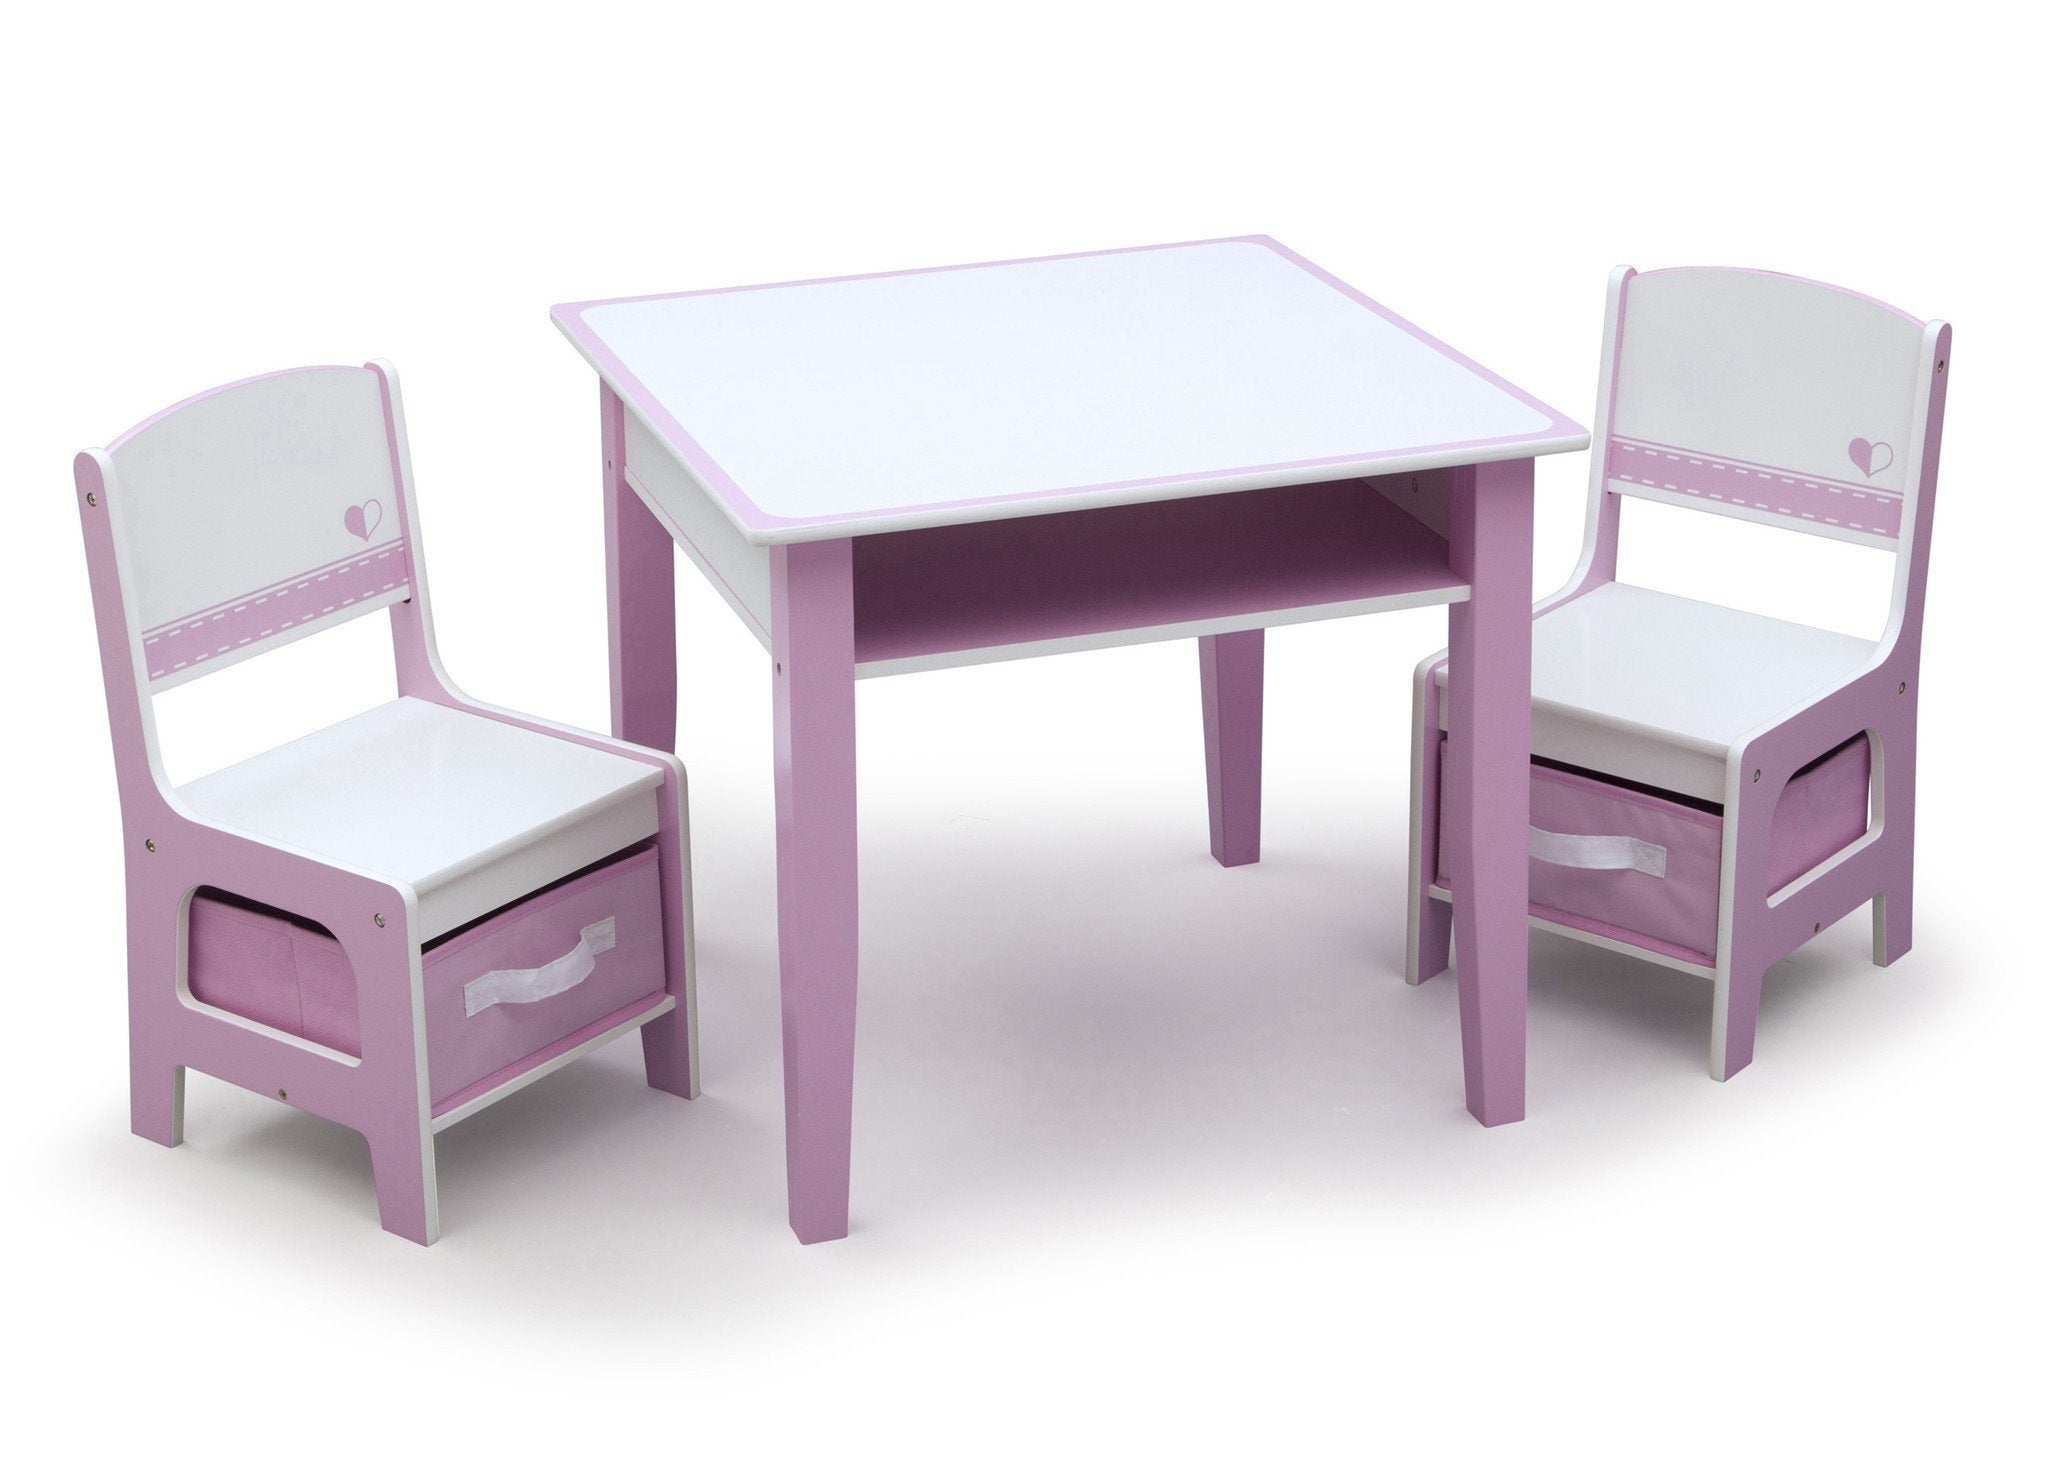 Pink And White Jack And Jill Storage Table U0026 Chair Set Style 1, Right View  ...